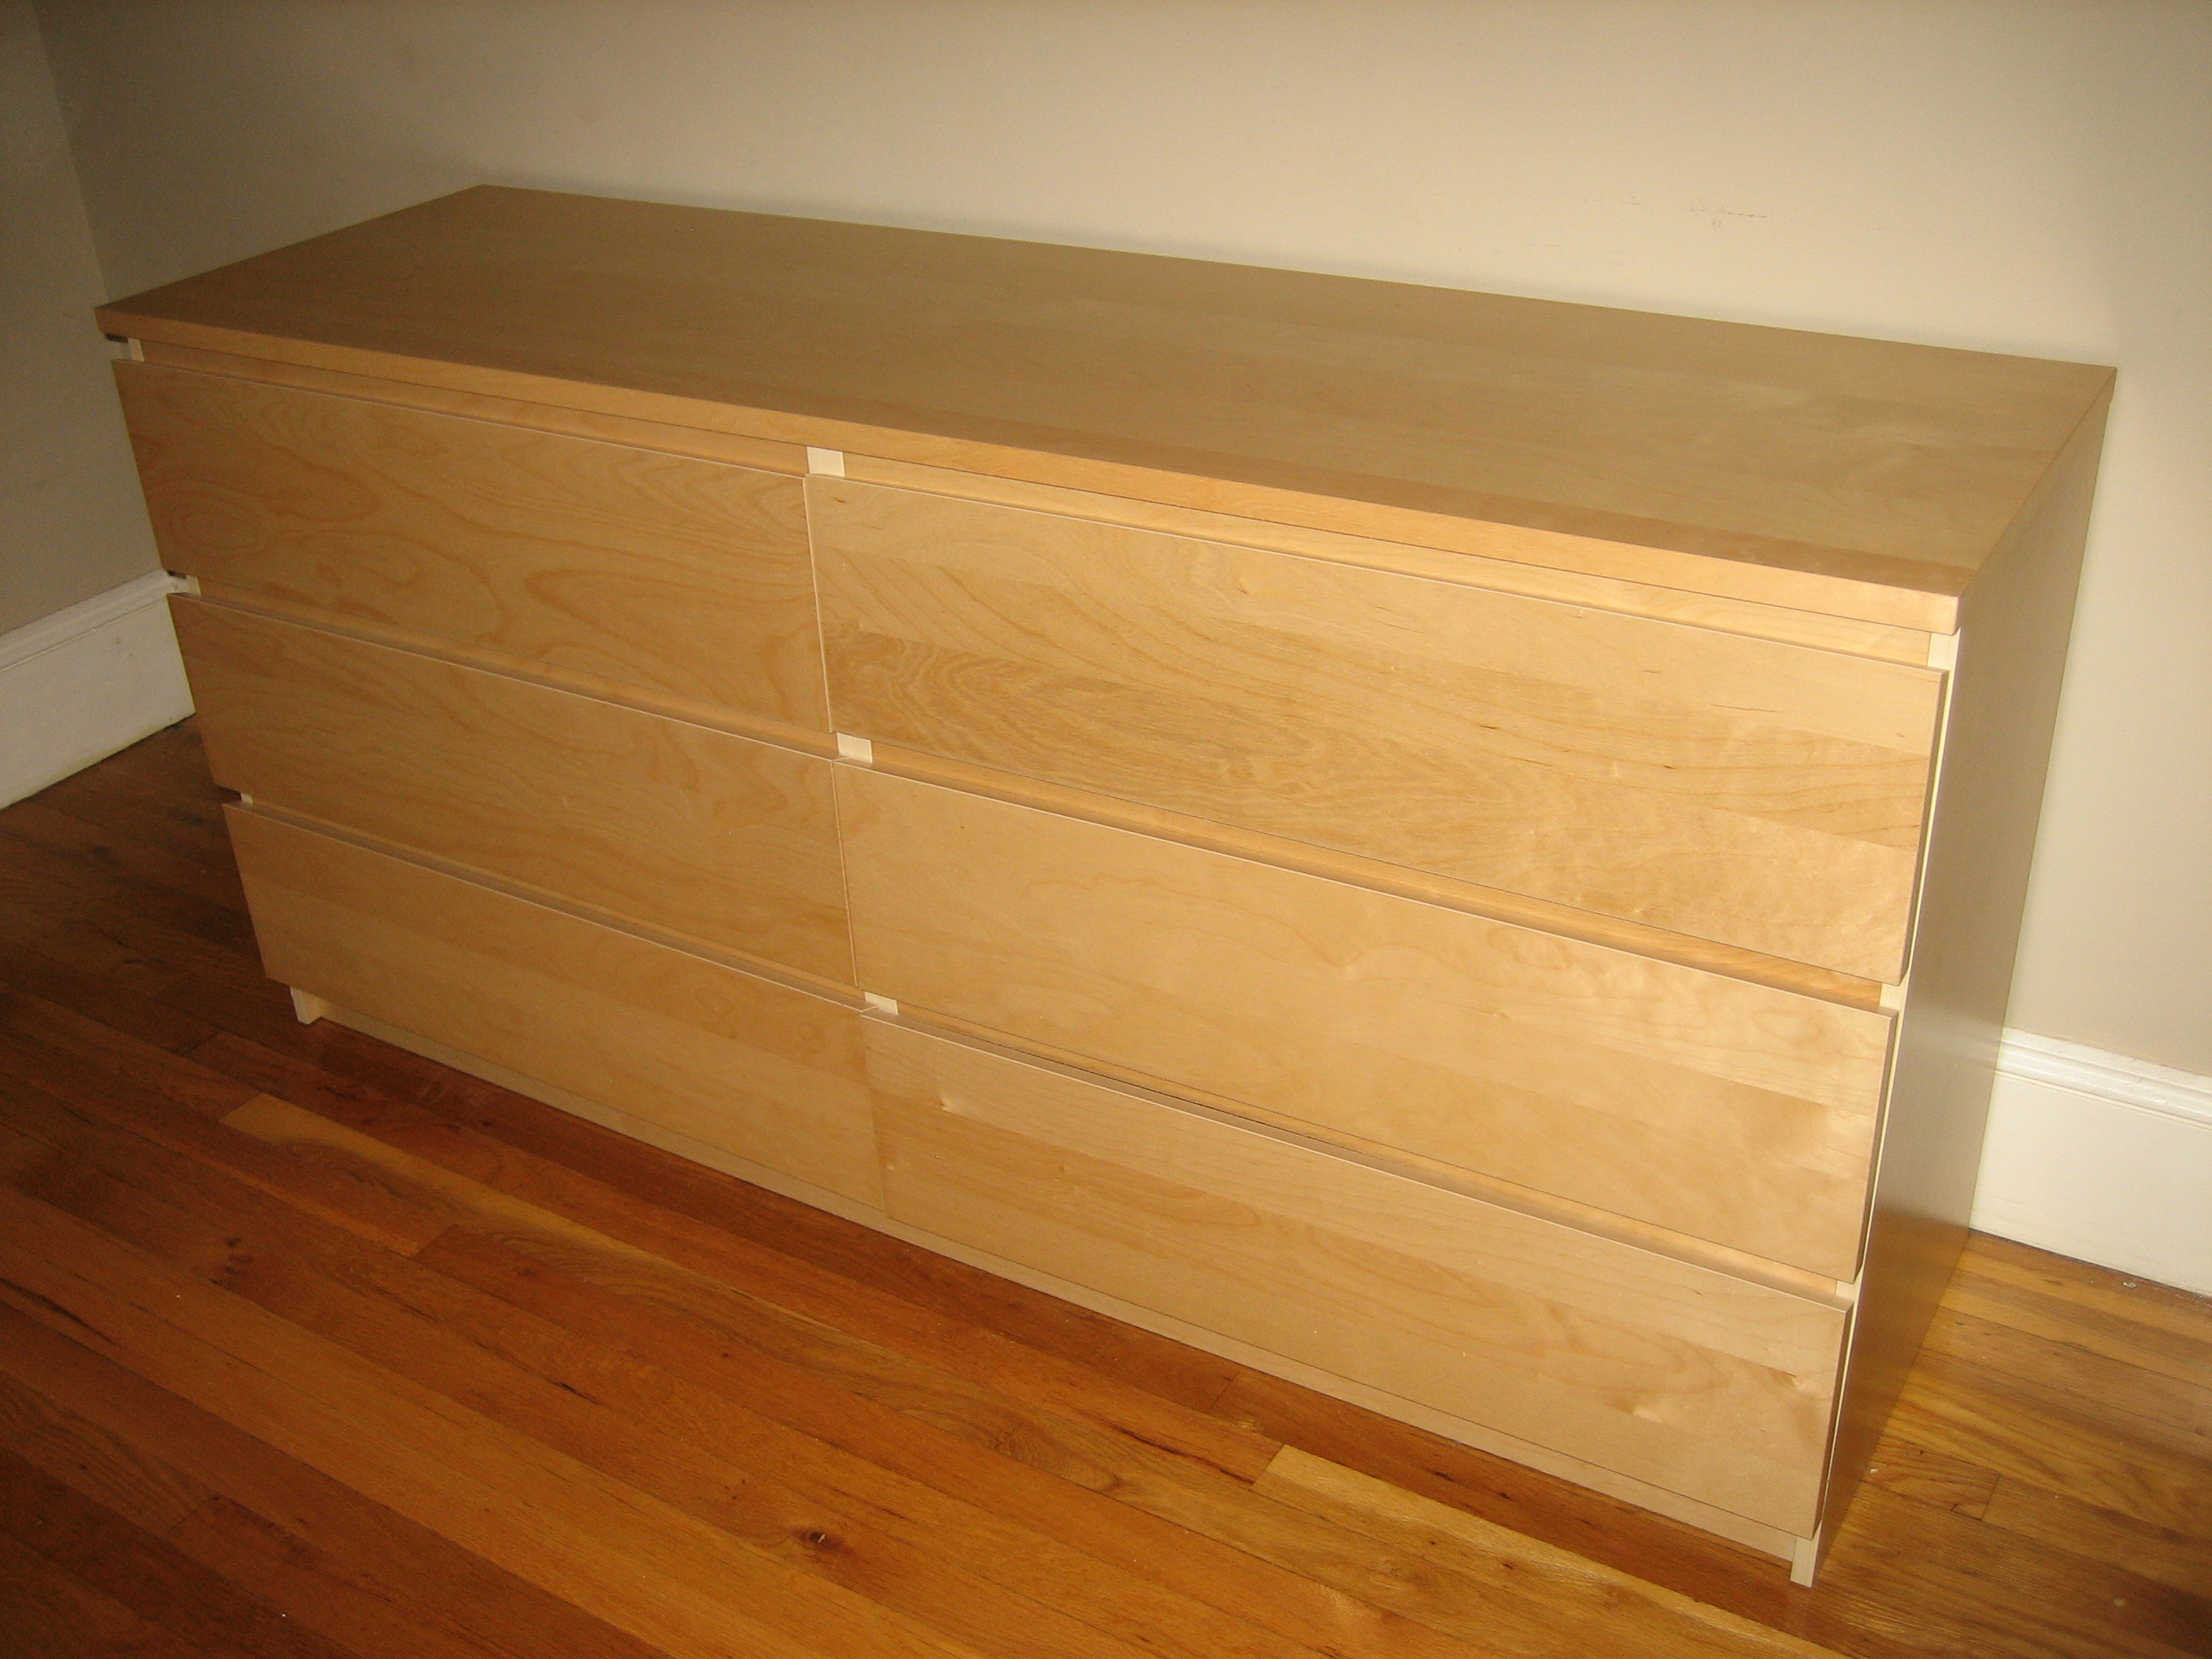 Modern Malm 6 Drawer Dresser With Wooden Floor